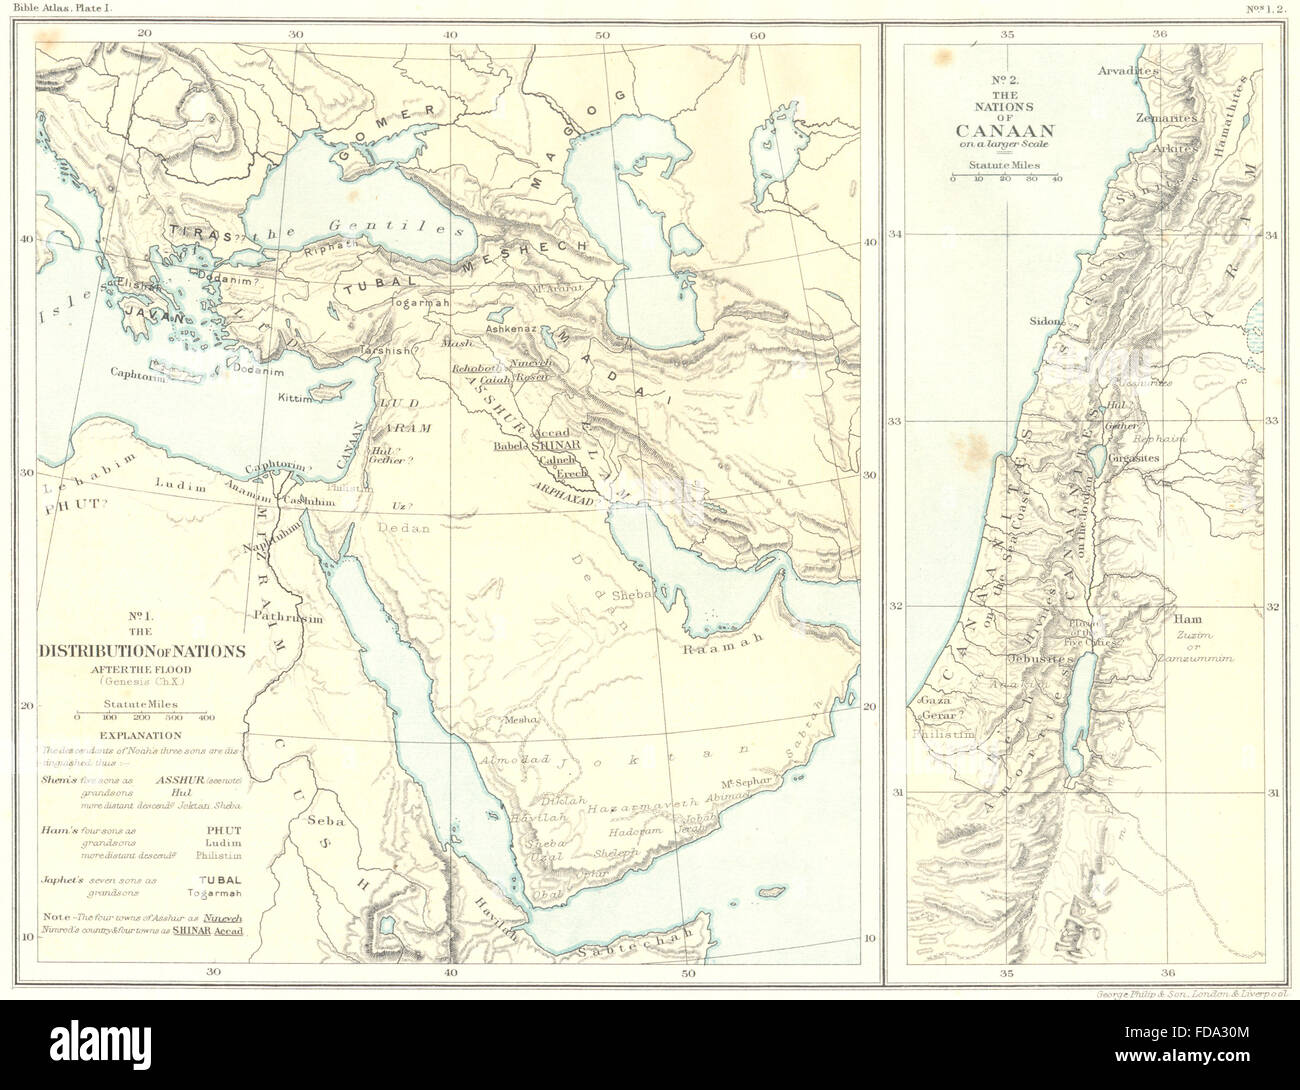 1900 Middle East Map.Middle East Nations Post Flood Of Canaan 1900 Antique Map Stock